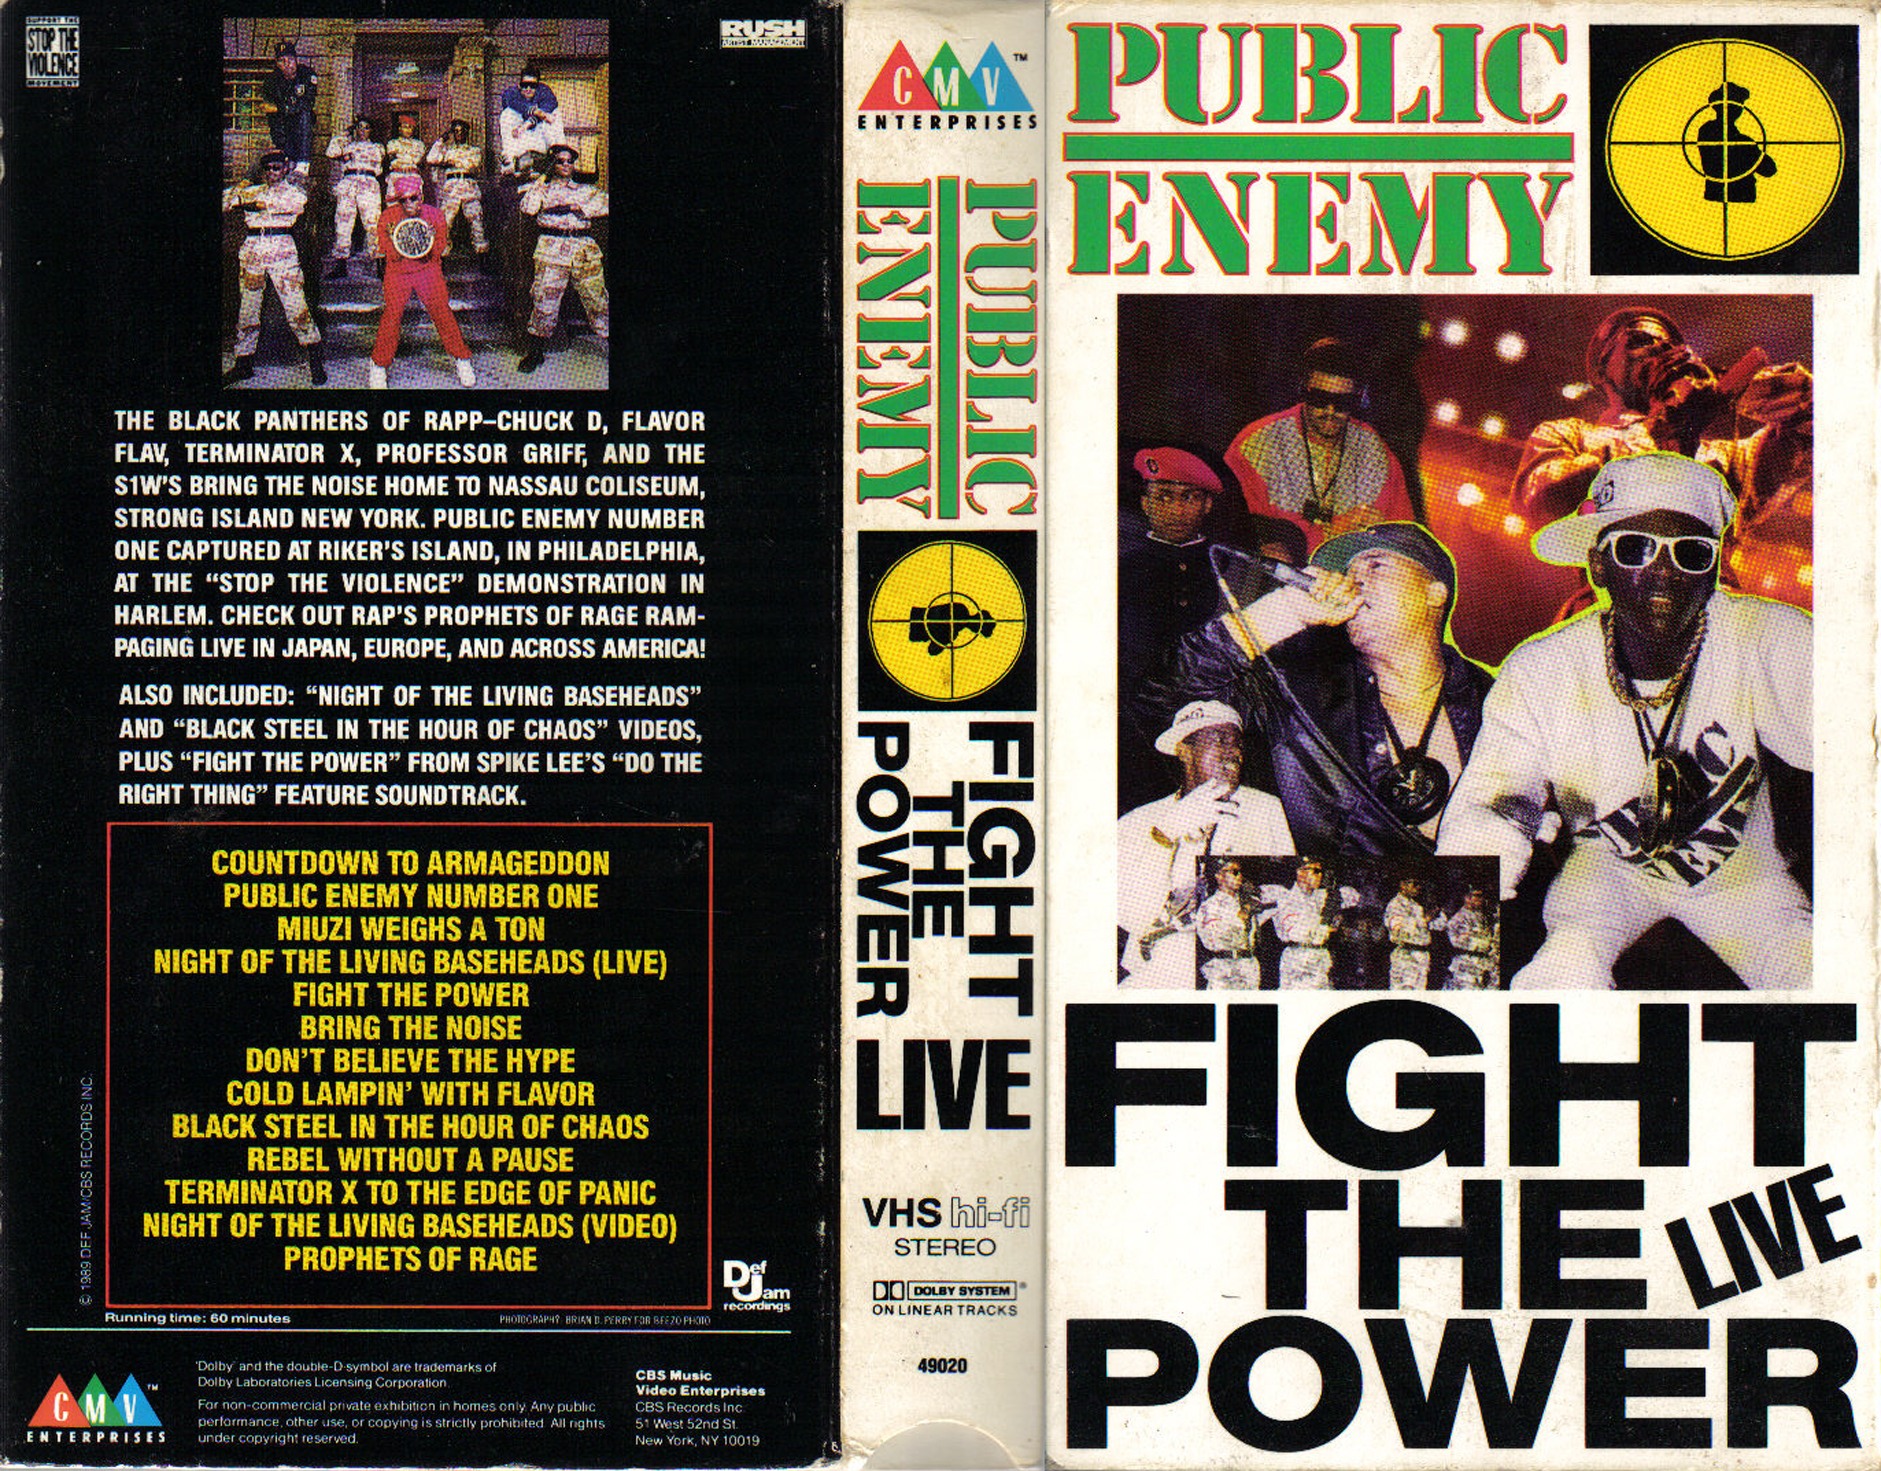 an analysis of public enemys song fight the power The induction ceremony for the rock and roll hall of fame took place thursday, april 18, in los angeles some of this year's inductees included heart, randy newman, rush and public enemy.